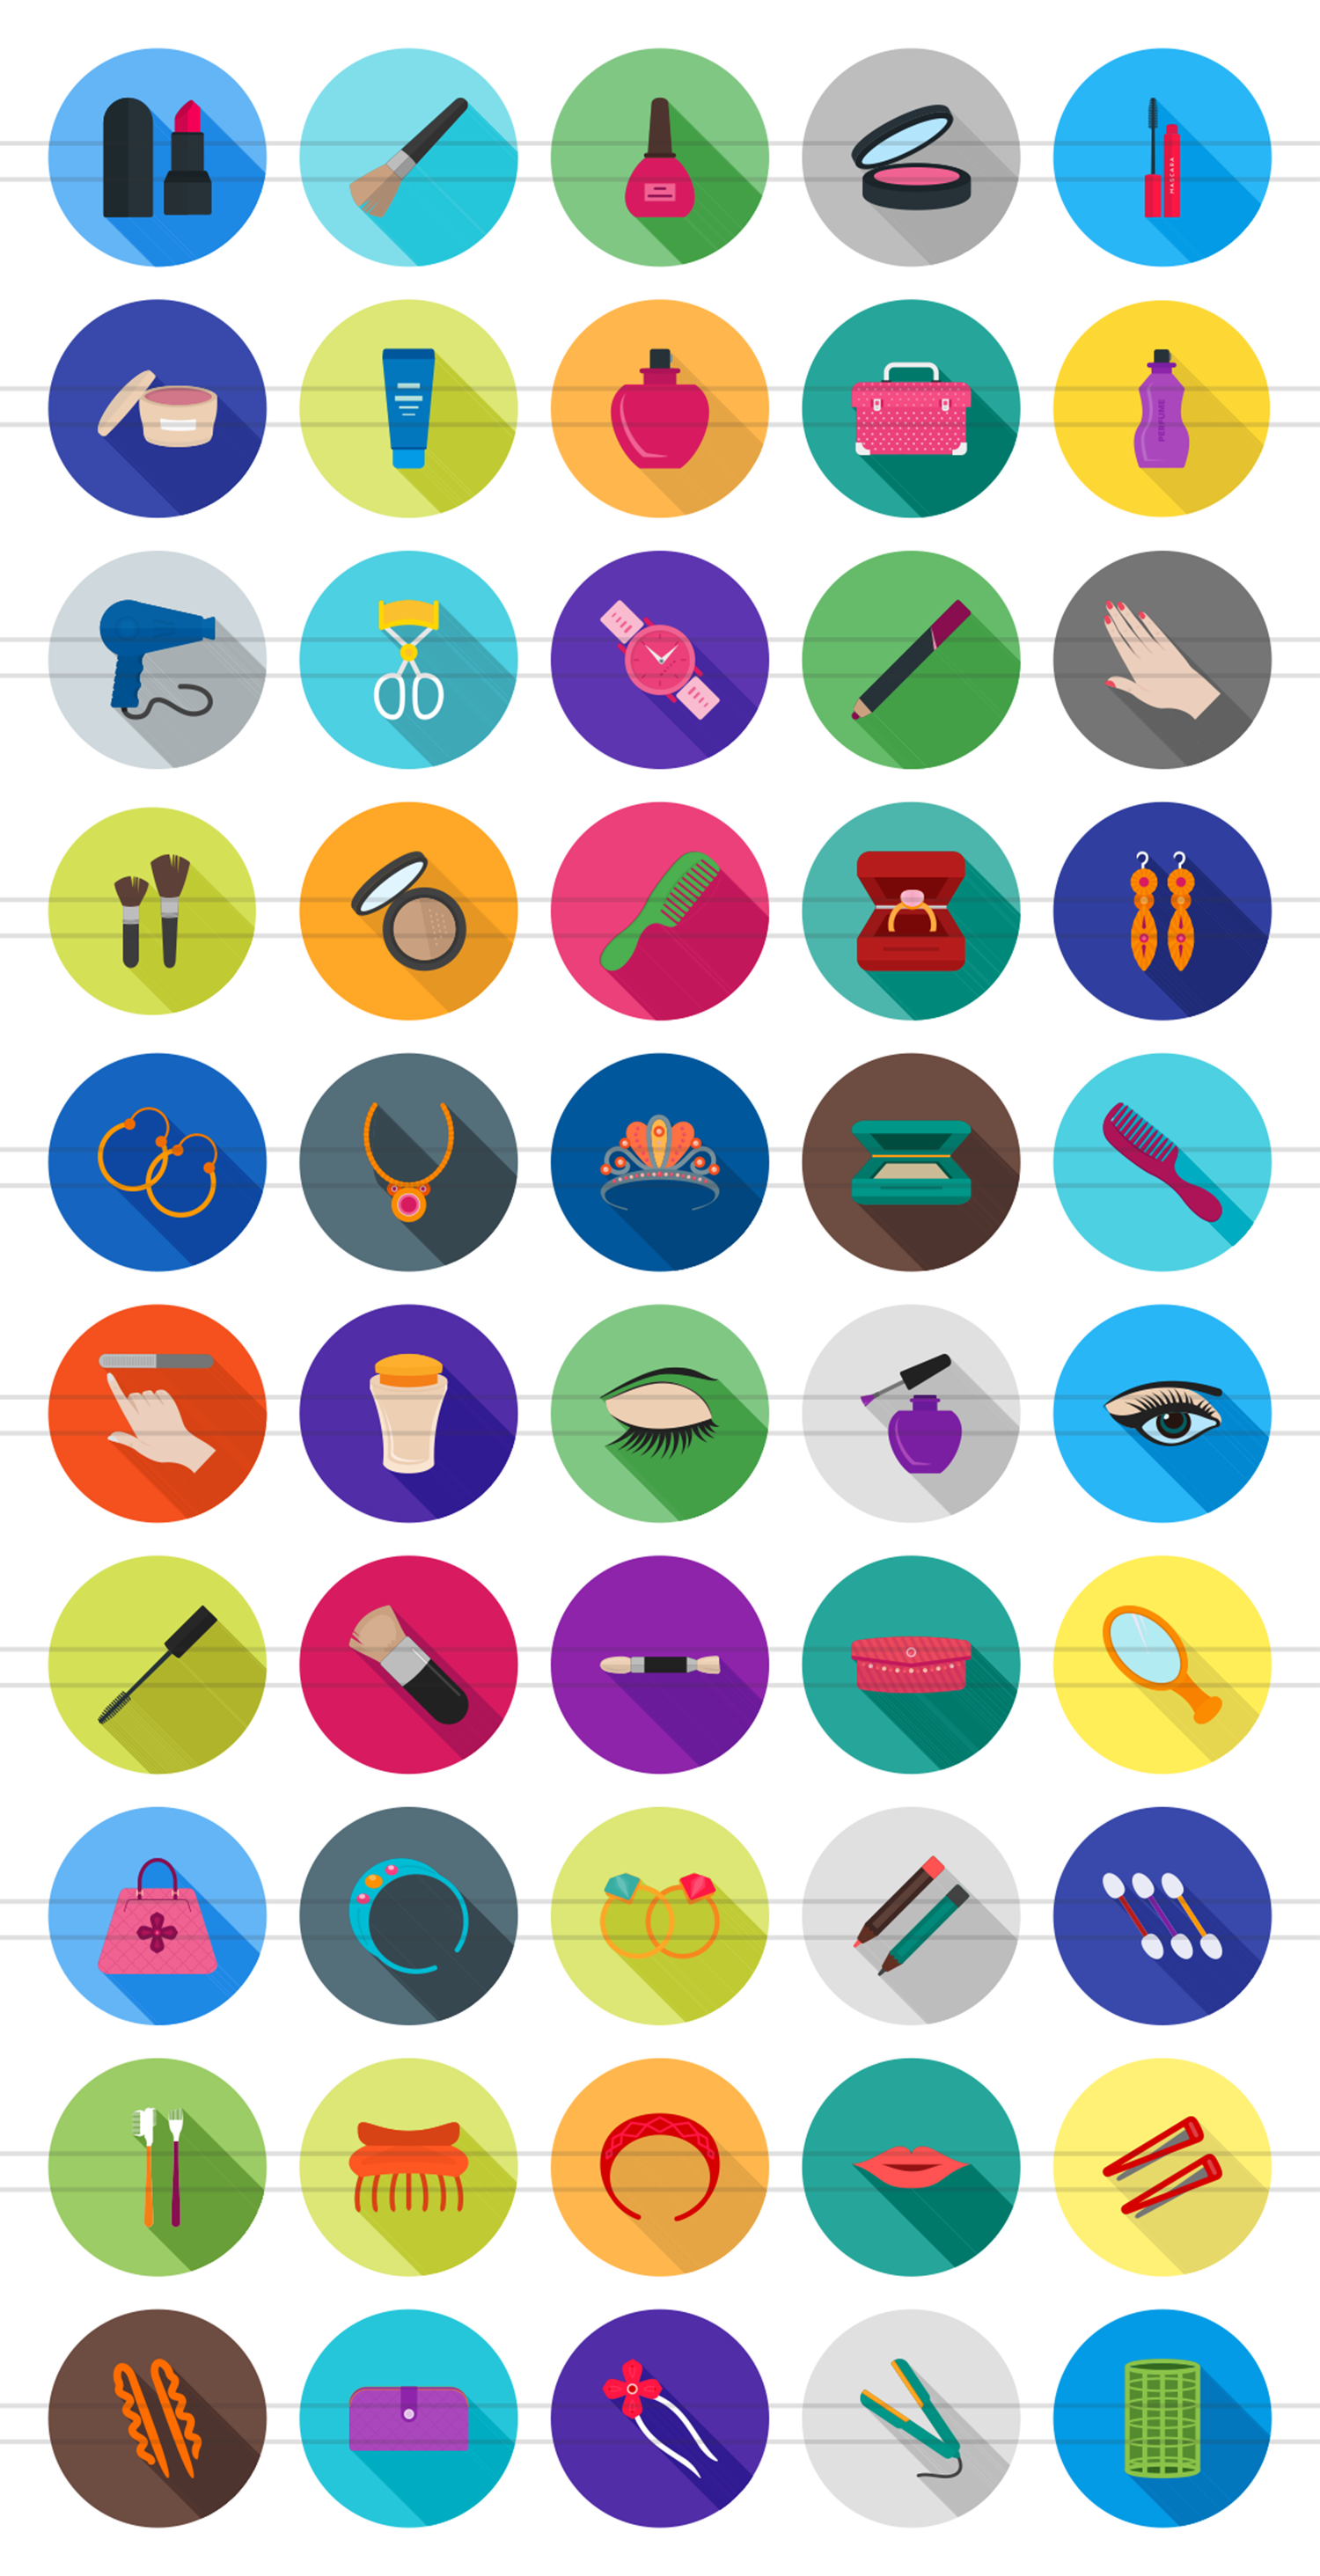 50 Makeup & Accessories Flat Long Shadow Icons example image 2